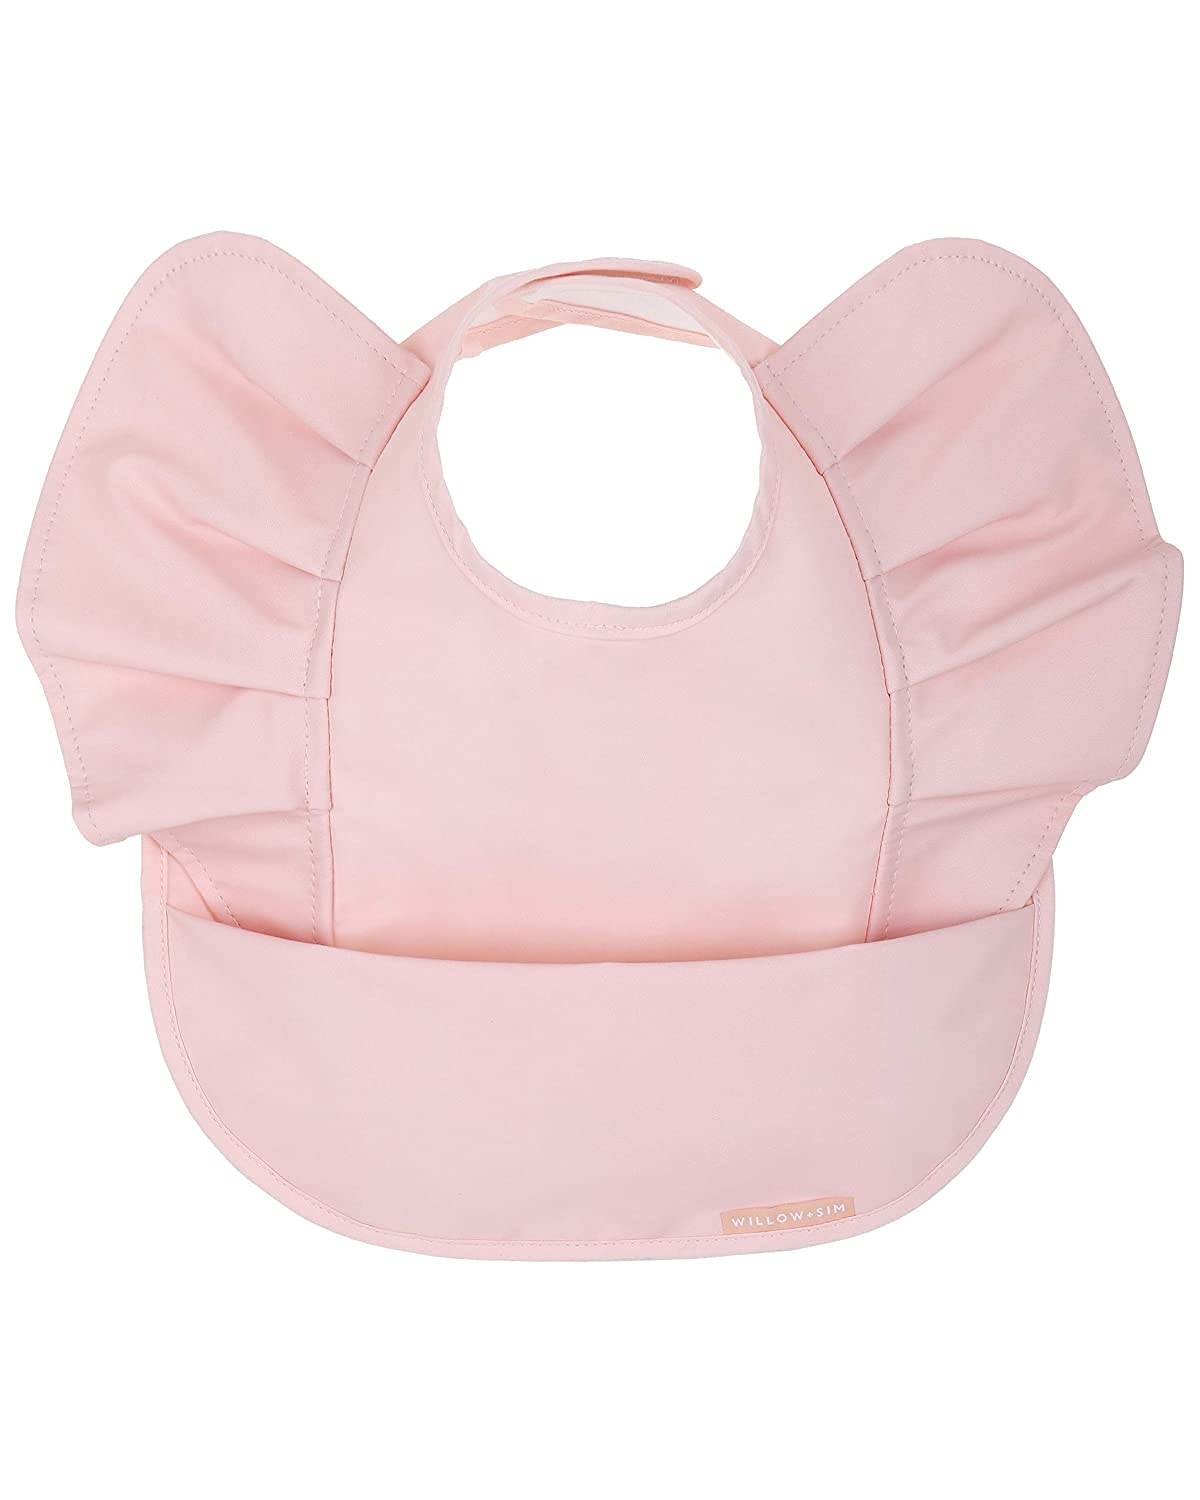 Waterproof Baby Bib Special sale item for Girl - C OFFicial site Better Than Silicone Wipe